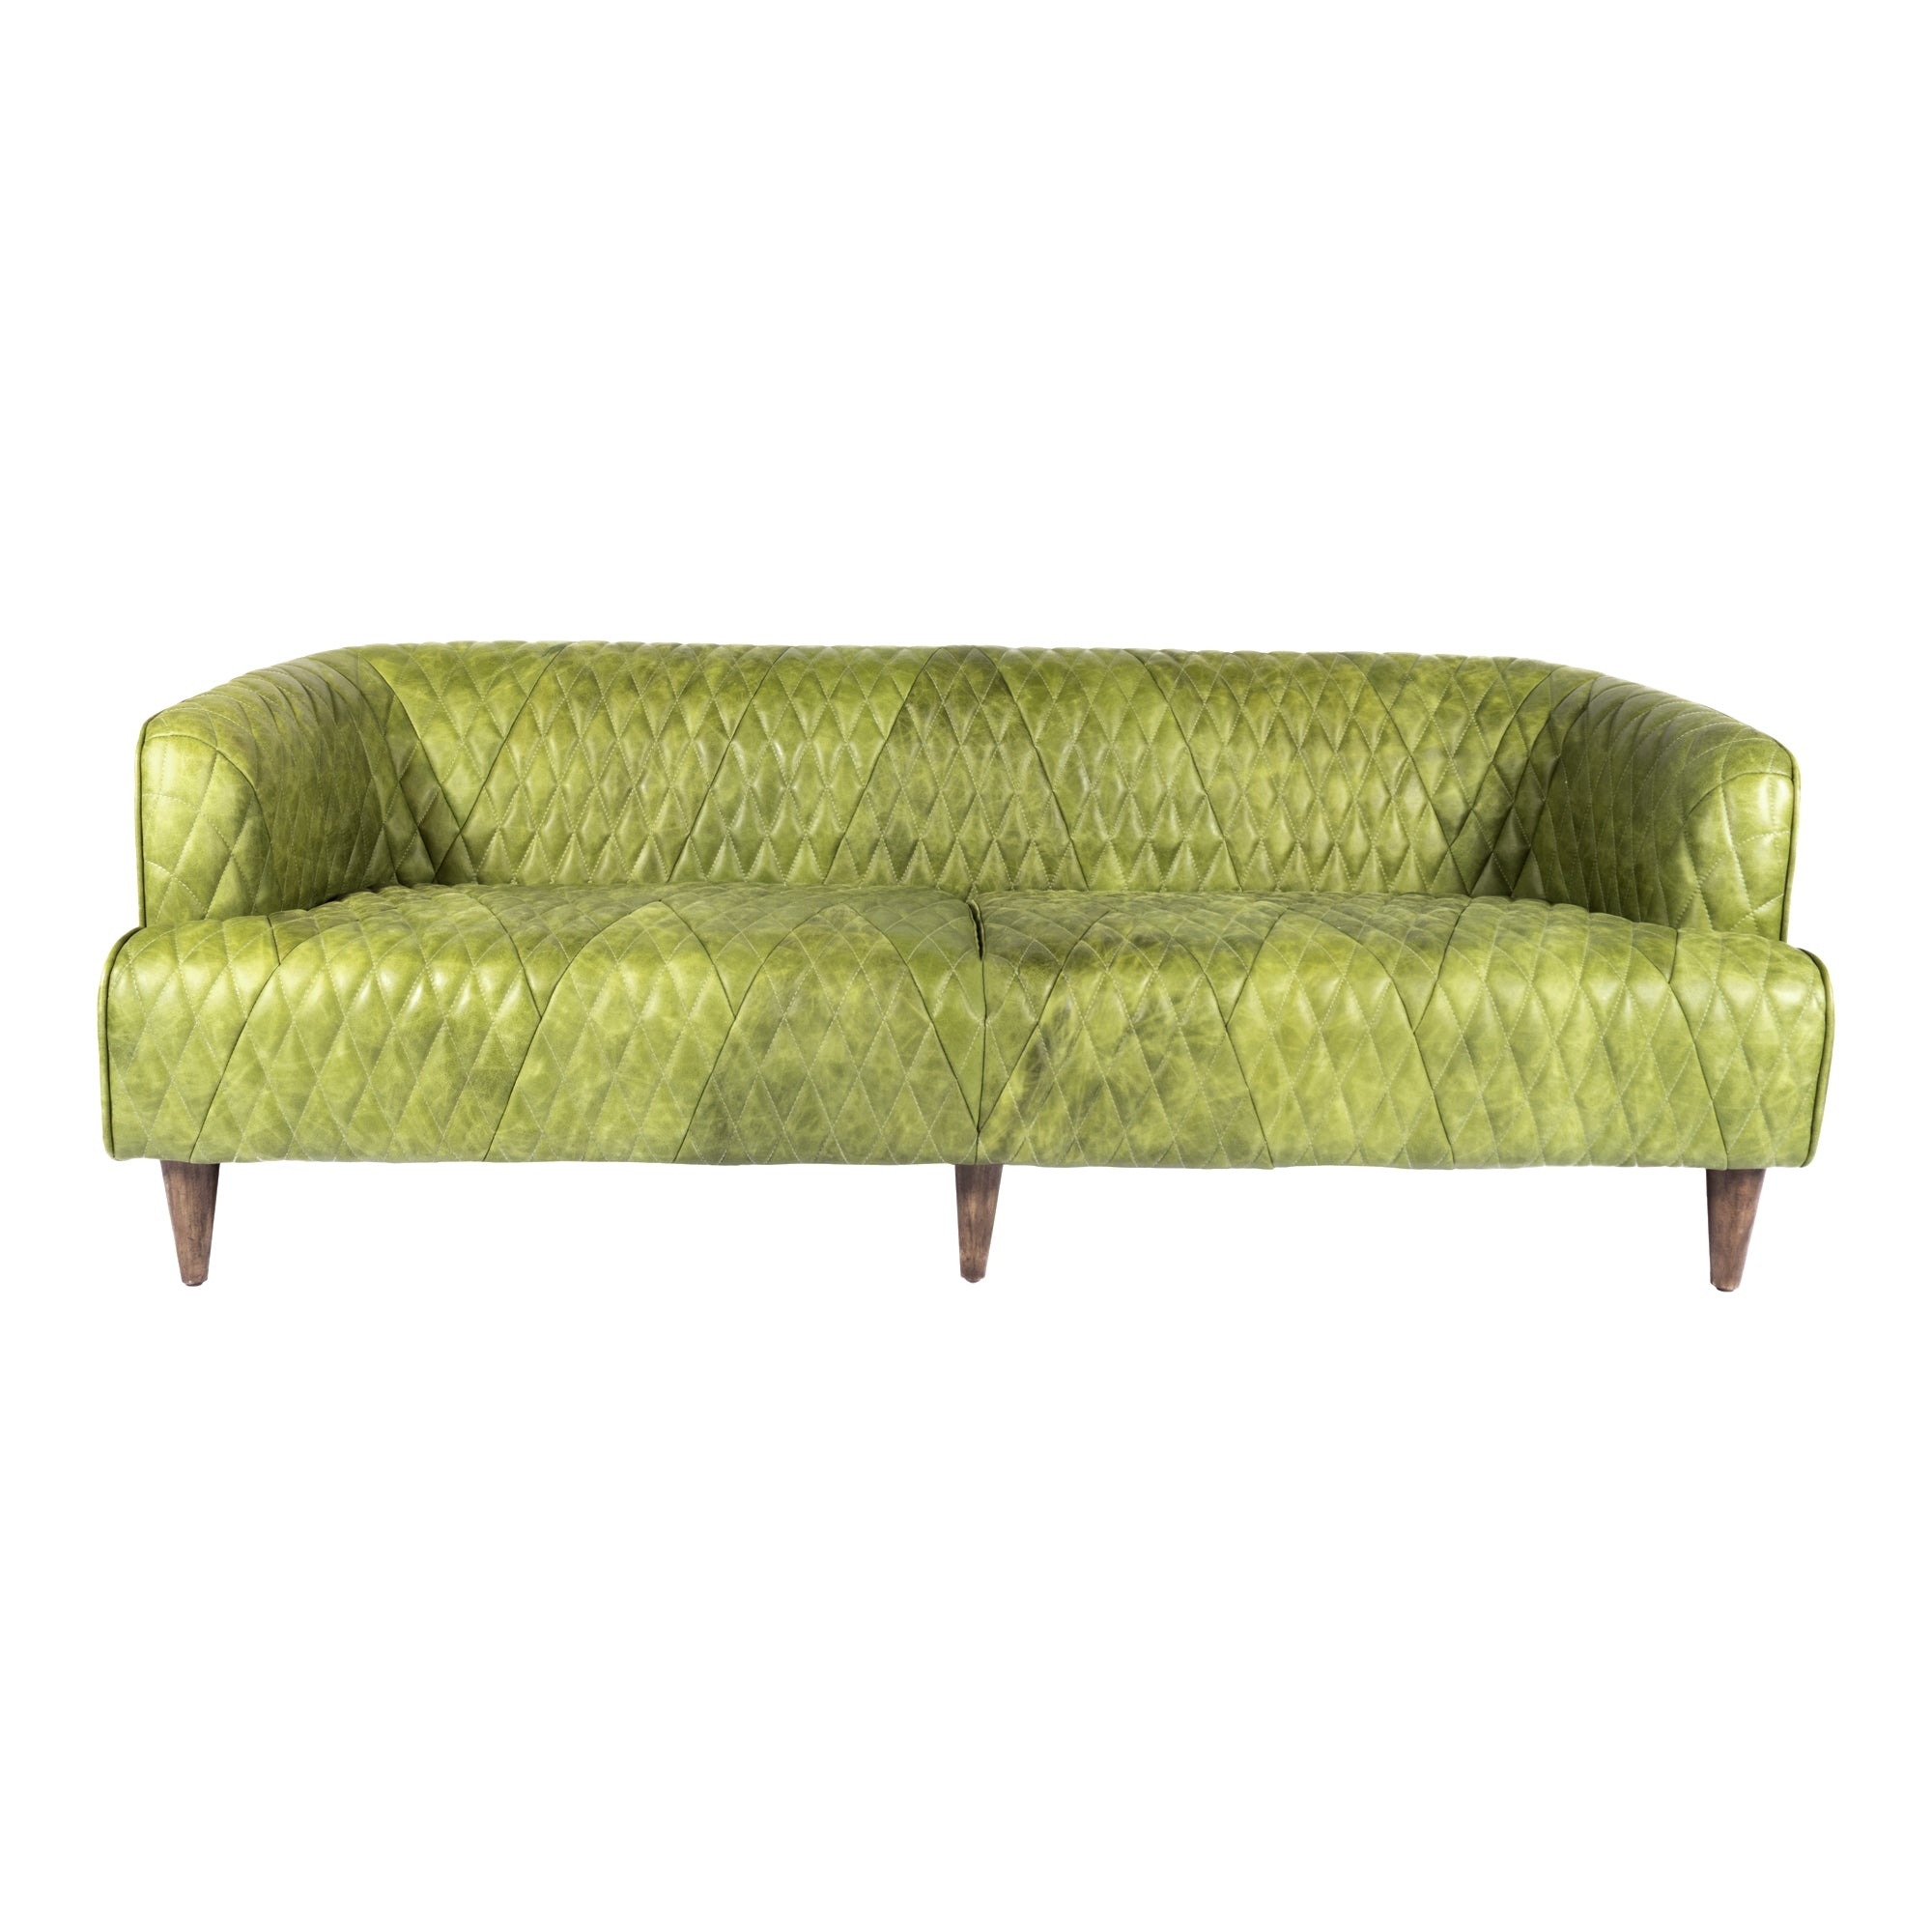 MAGDELAN SOFA, Green - Tops-Dress